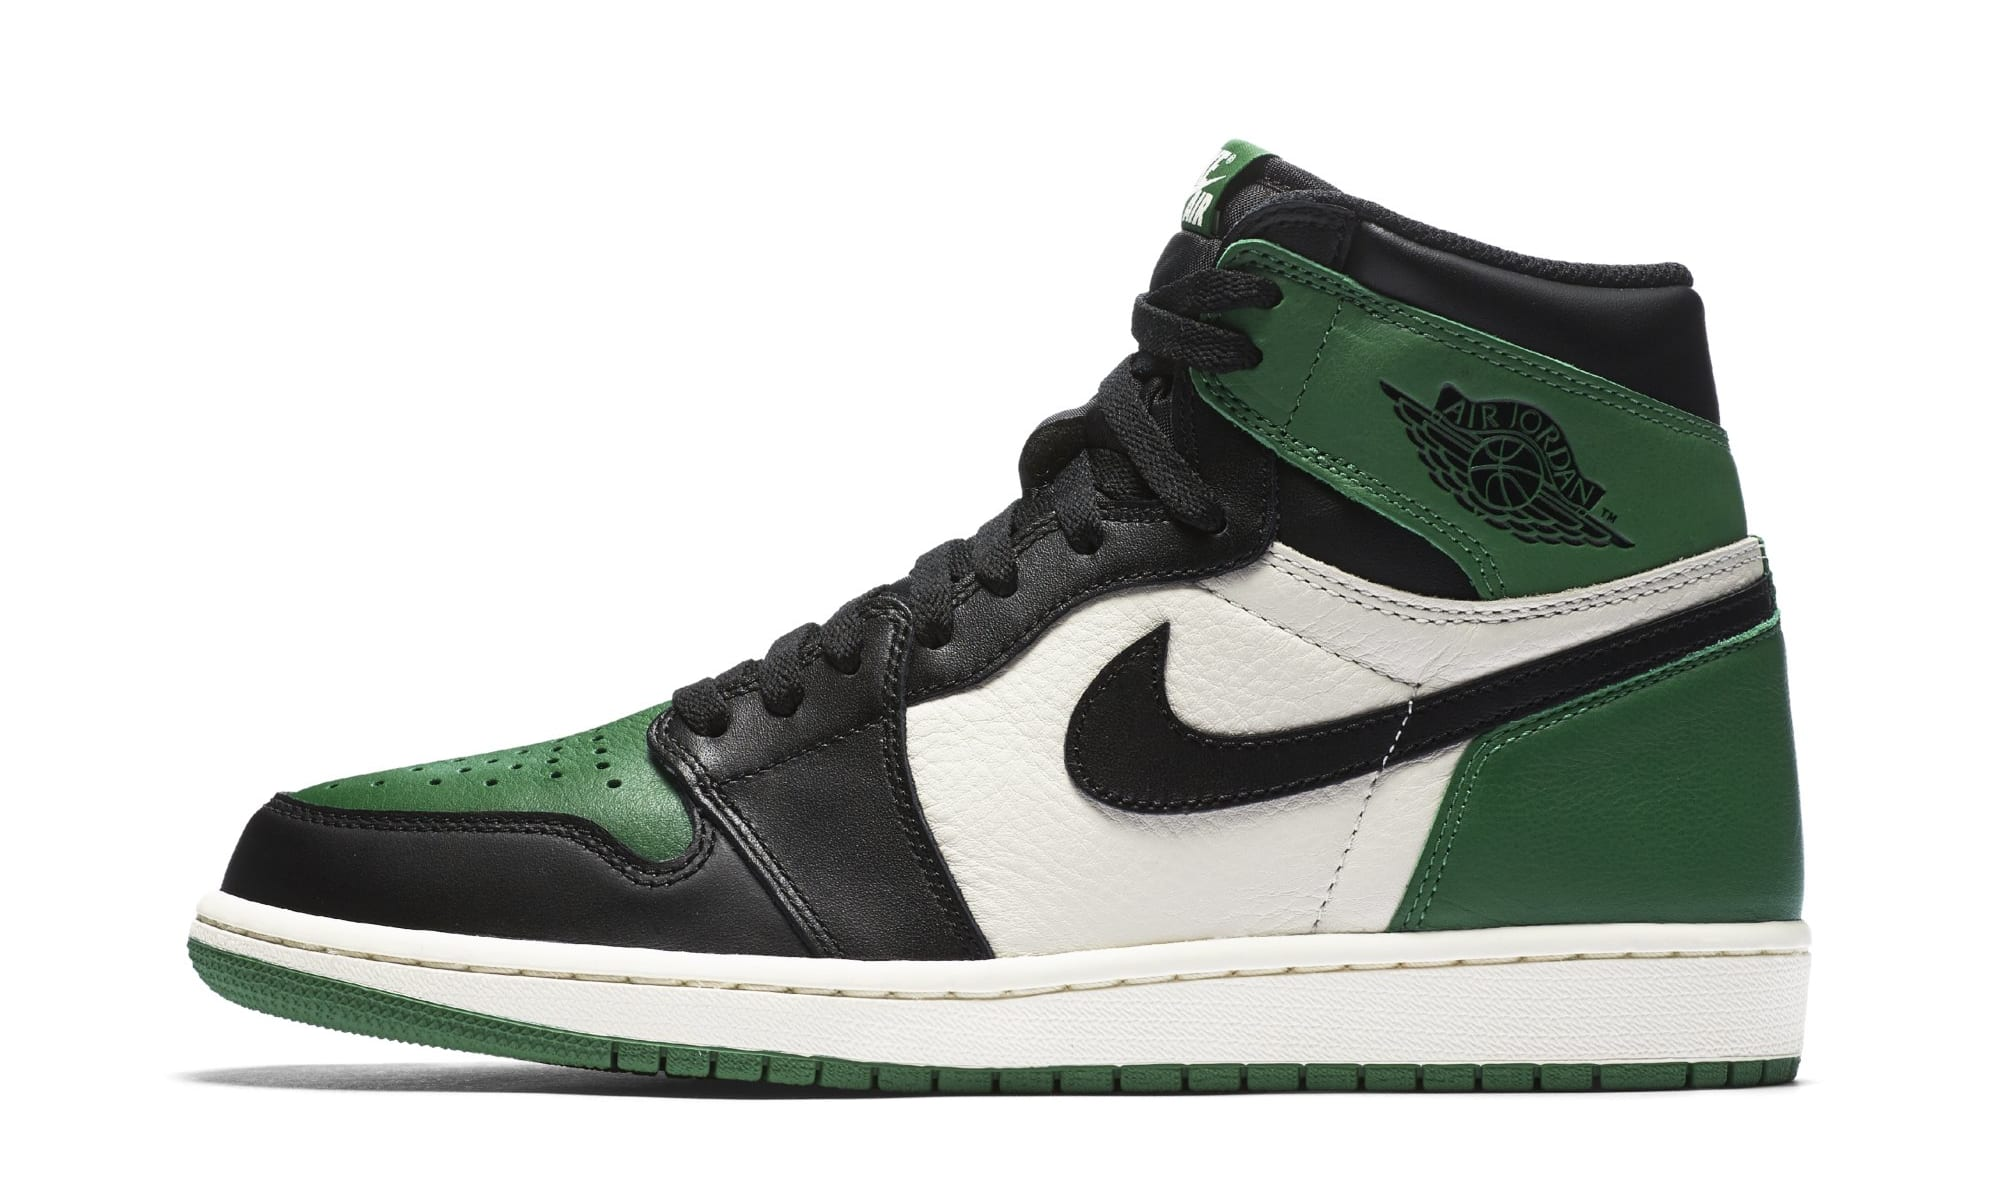 Air Jordan 1 High OG 'Pine Green' 555088-032 (Lateral)